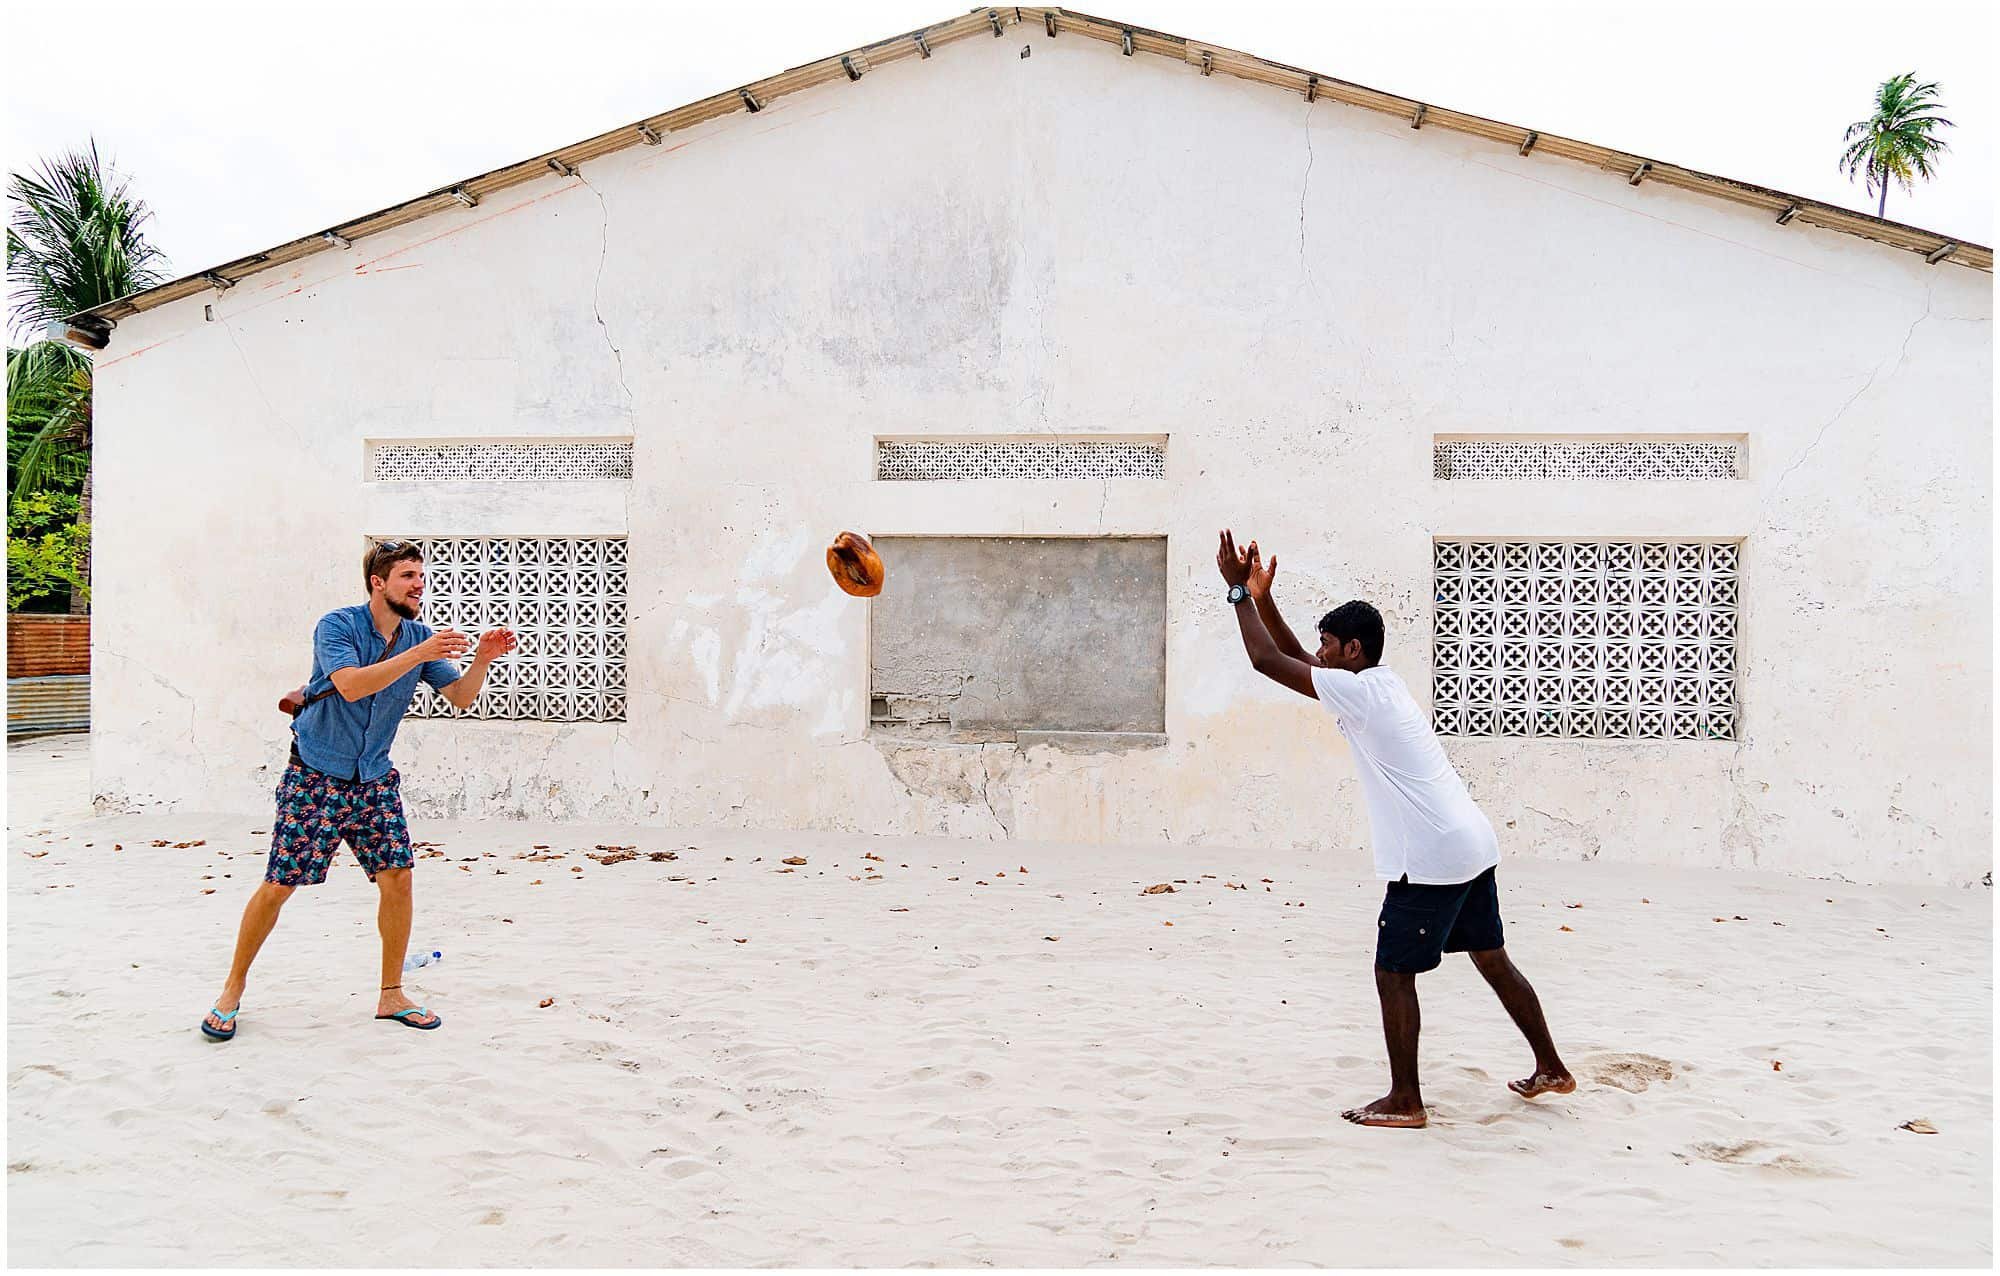 Throwing a coconut on Rinbudhoo Island in the Maldives